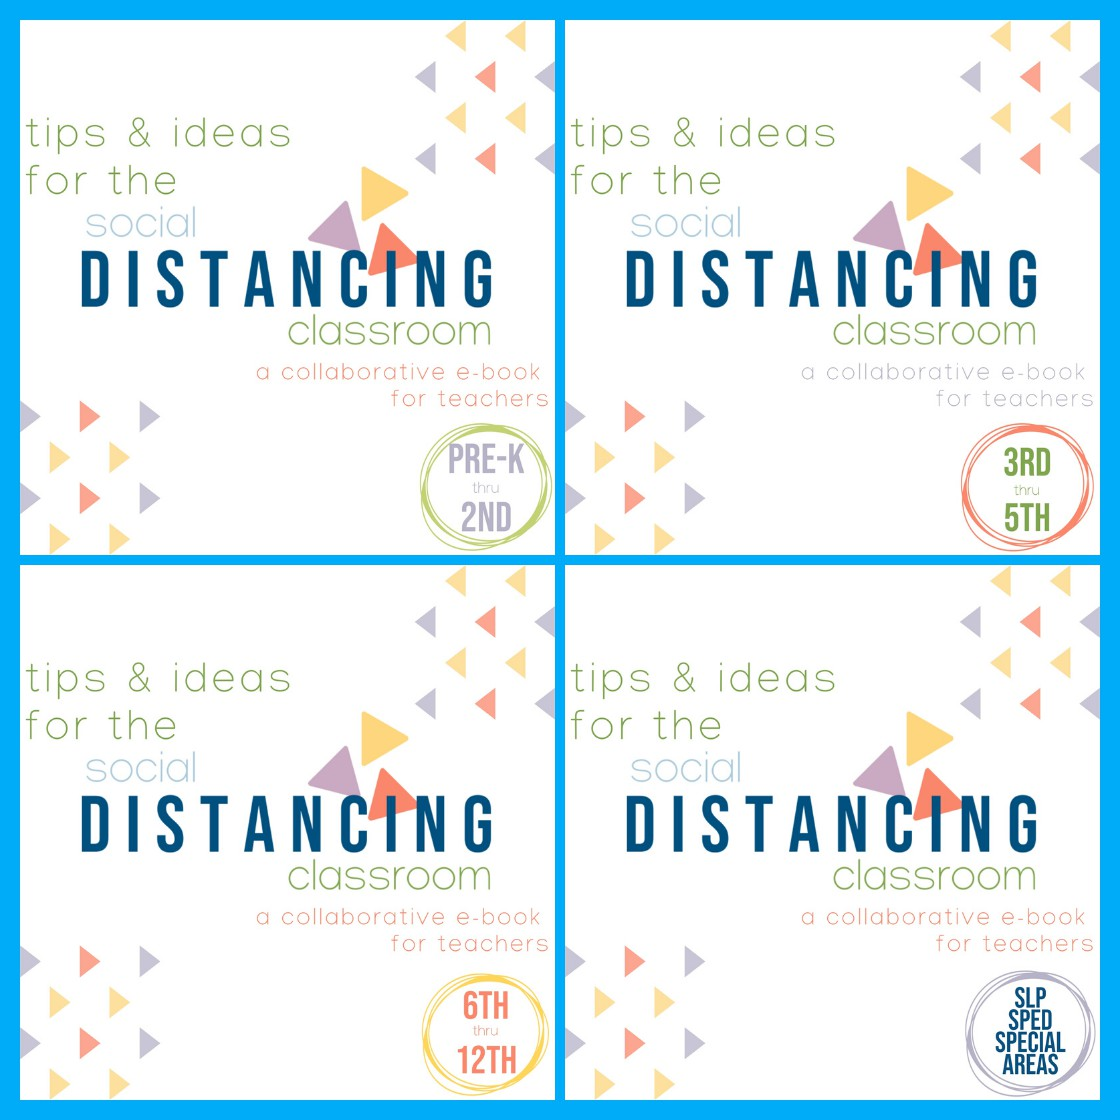 Find tips & ideas for virtual teaching and teaching in social distancing classrooms in 4 free ebooks created by TpT teacher-authors for Back to School 2020 | The ESL Nexus